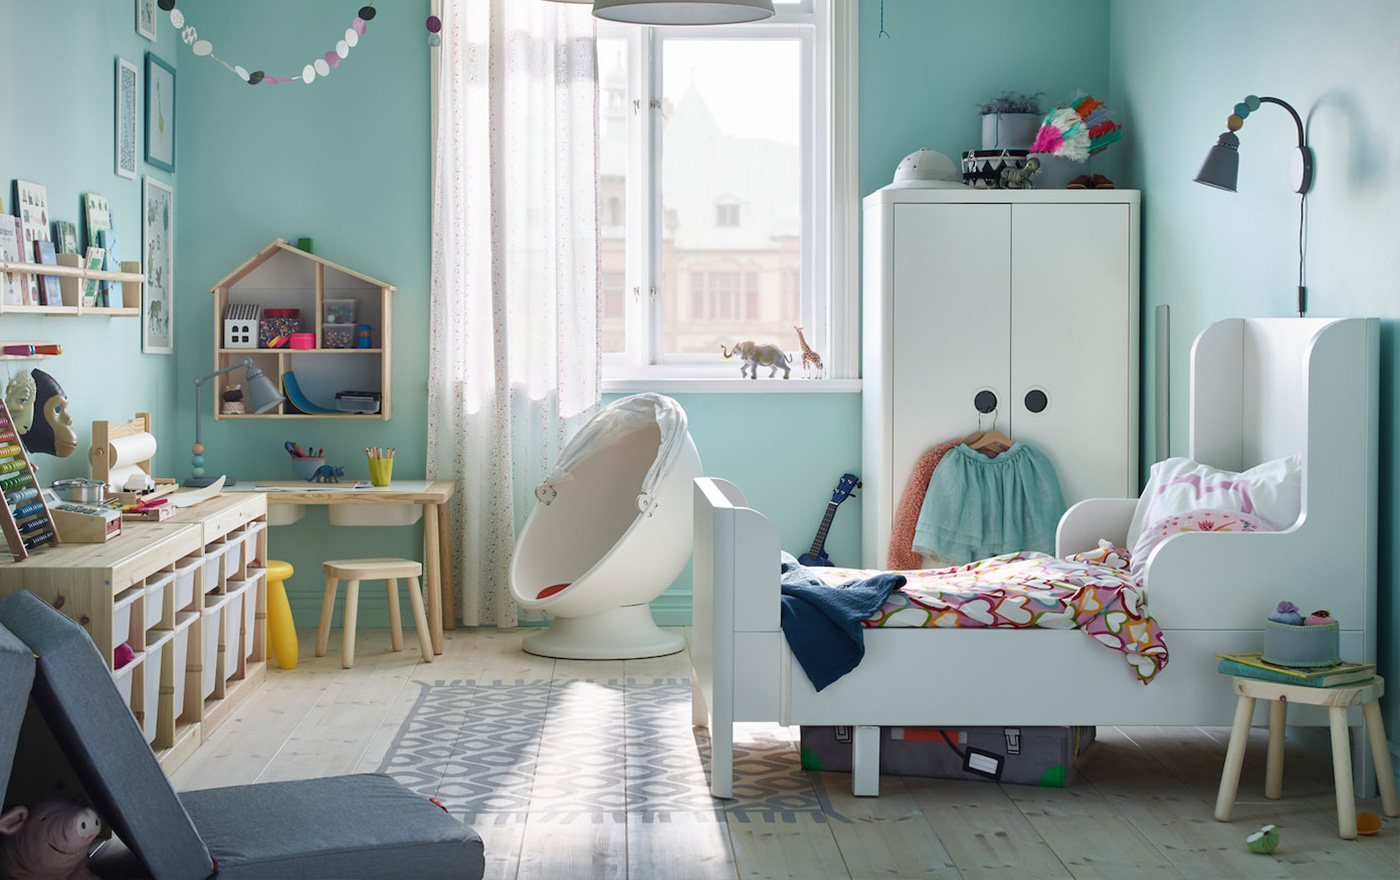 Kids bedroom furniture | Furnishing a kid\'s room - IKEA